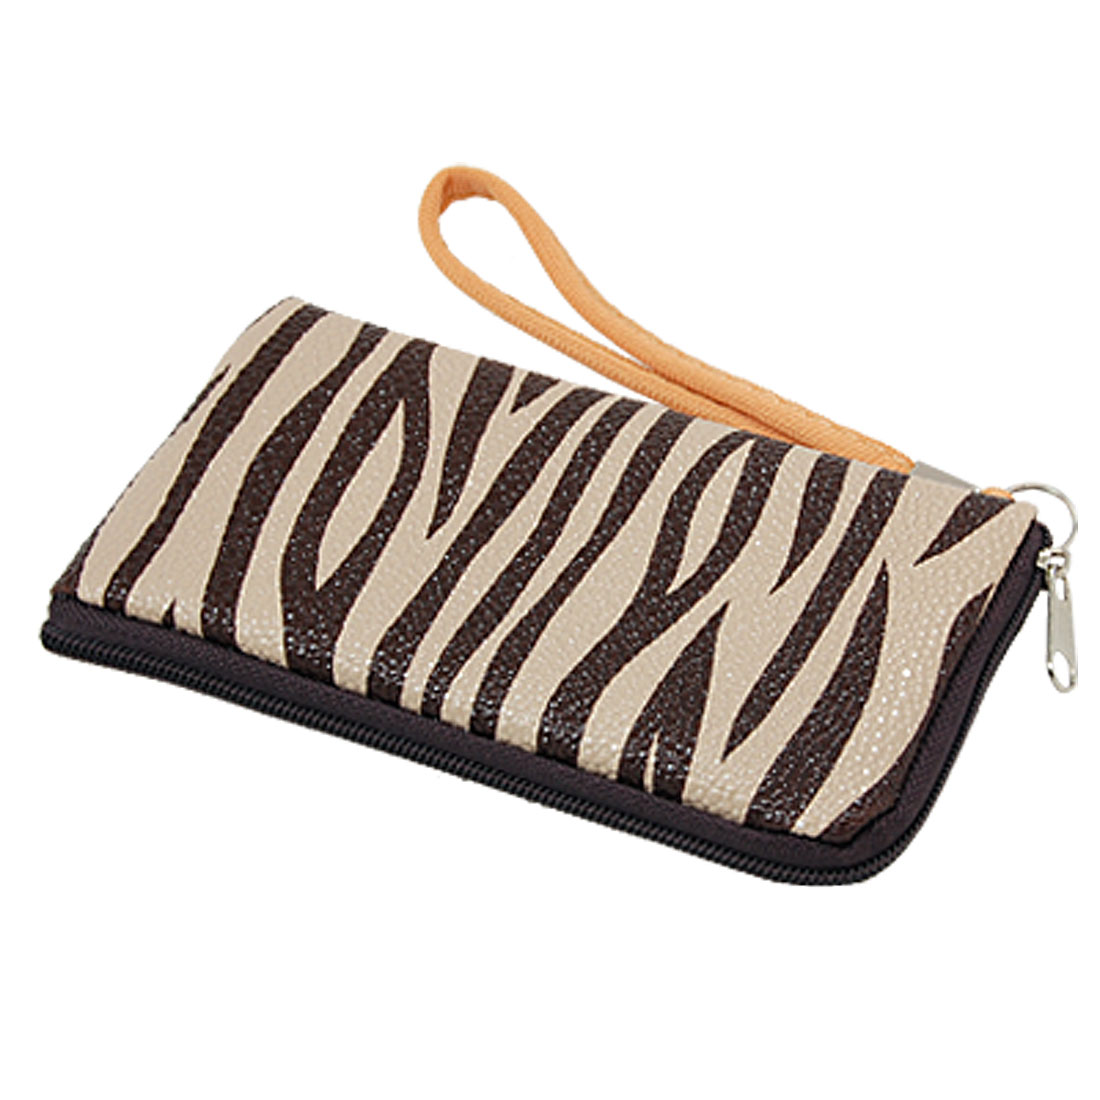 Hand Strap Carrying Zebra Stripe Purse Pouch Bag for Smartphone